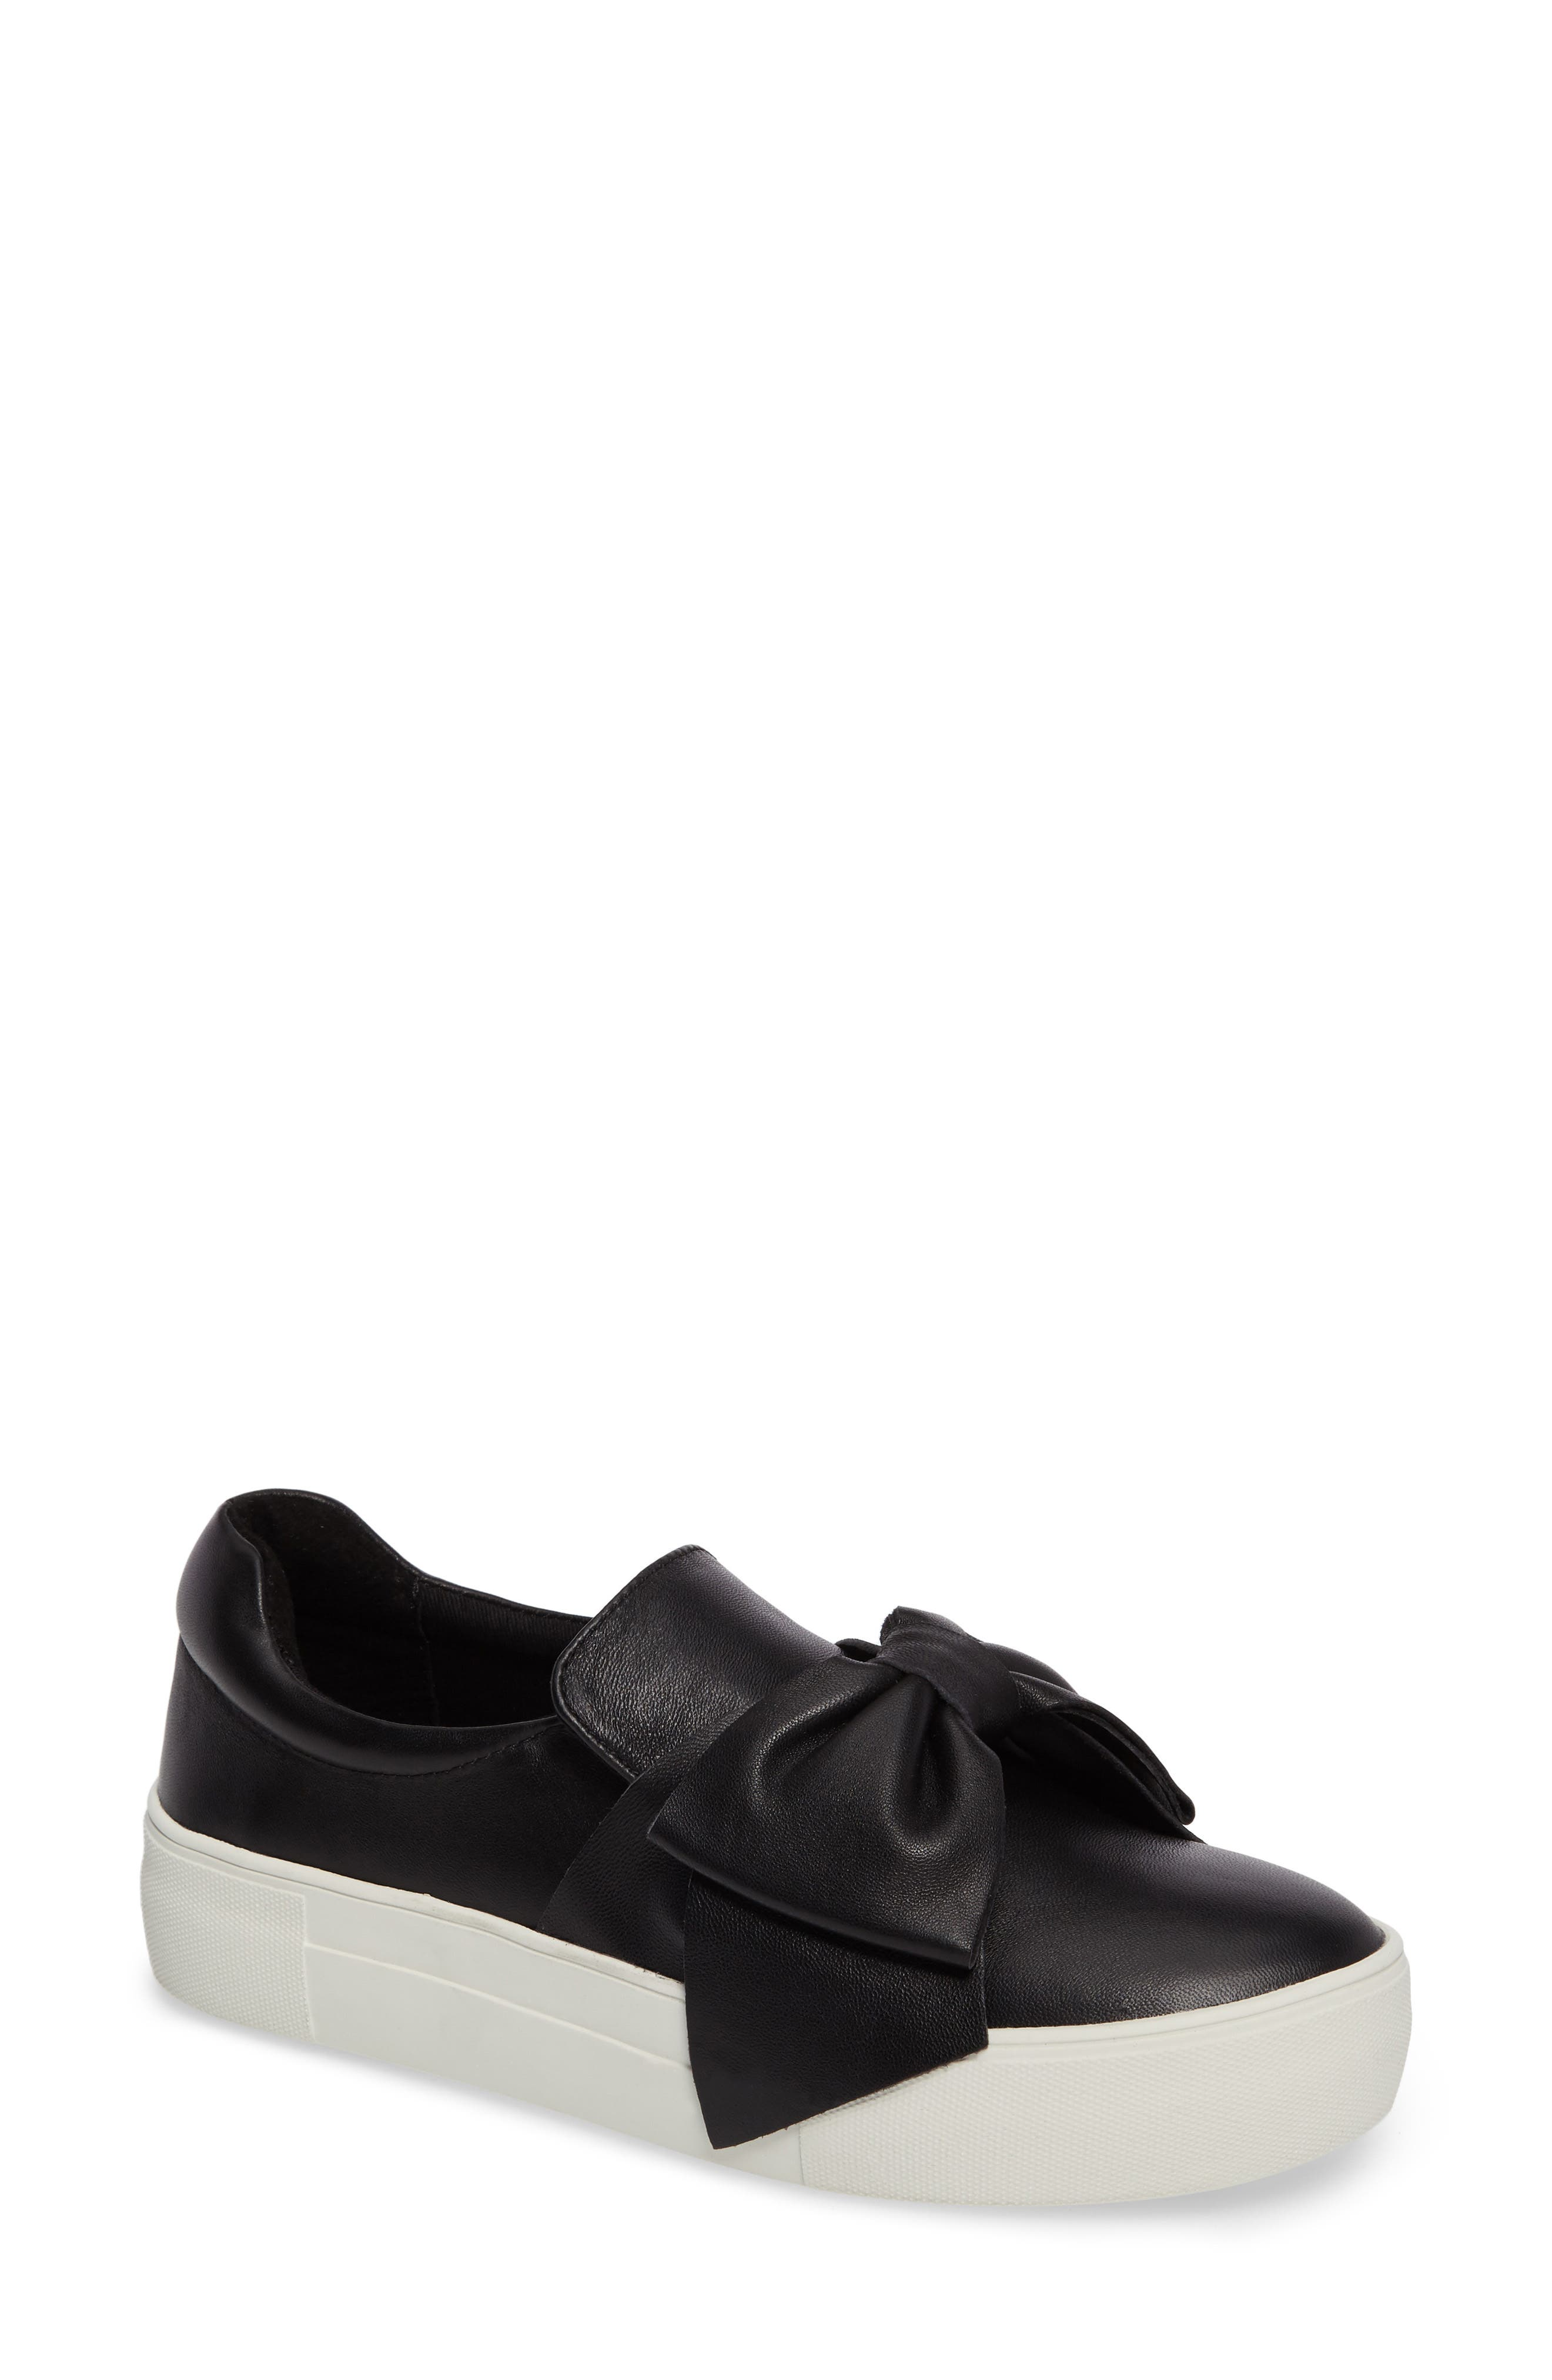 Empire Slip-On,                         Main,                         color, Black Leather